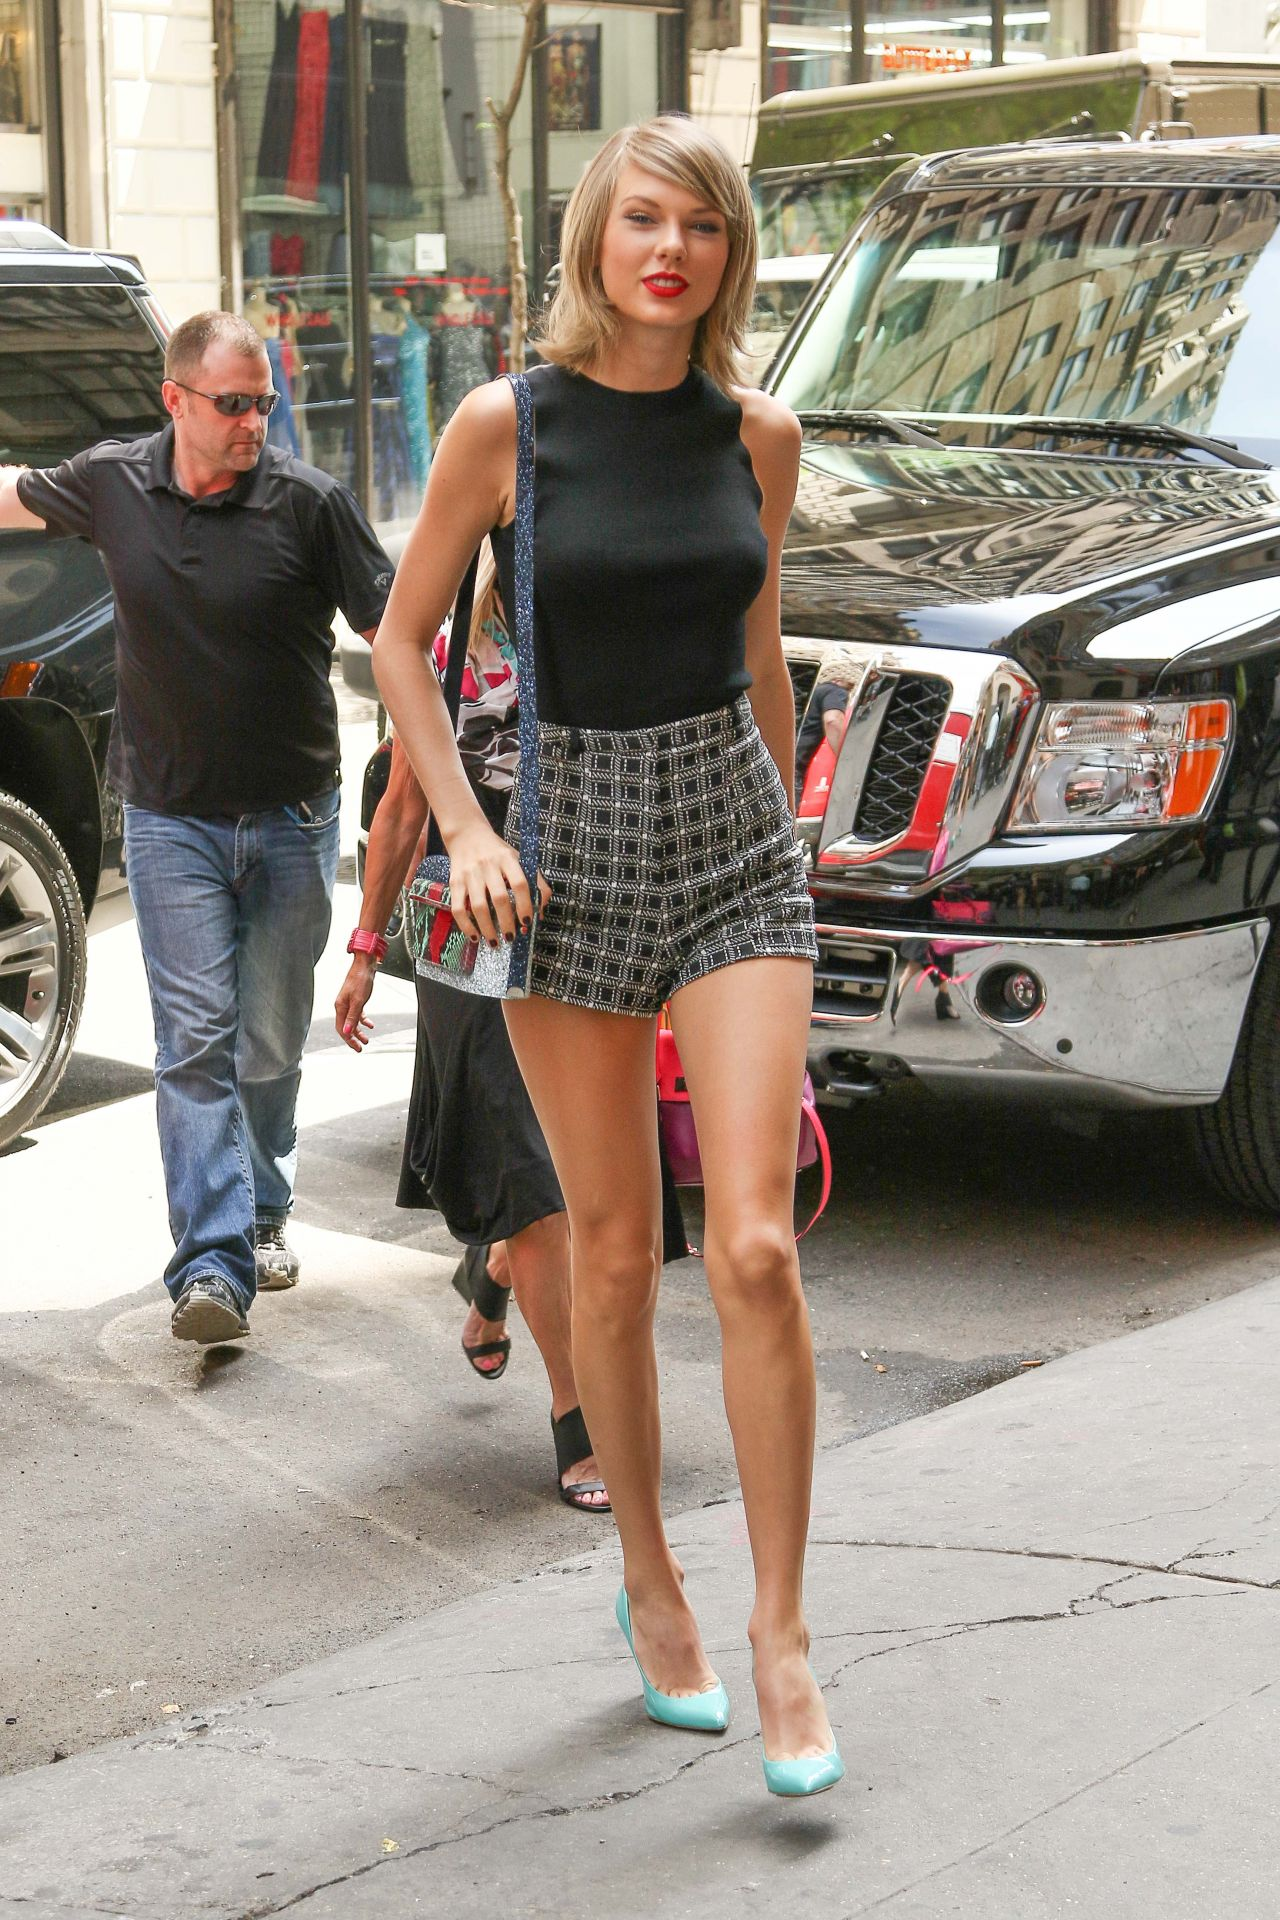 Taylor Swift Shows Off Her Legs In A Pair Of Short Shorts